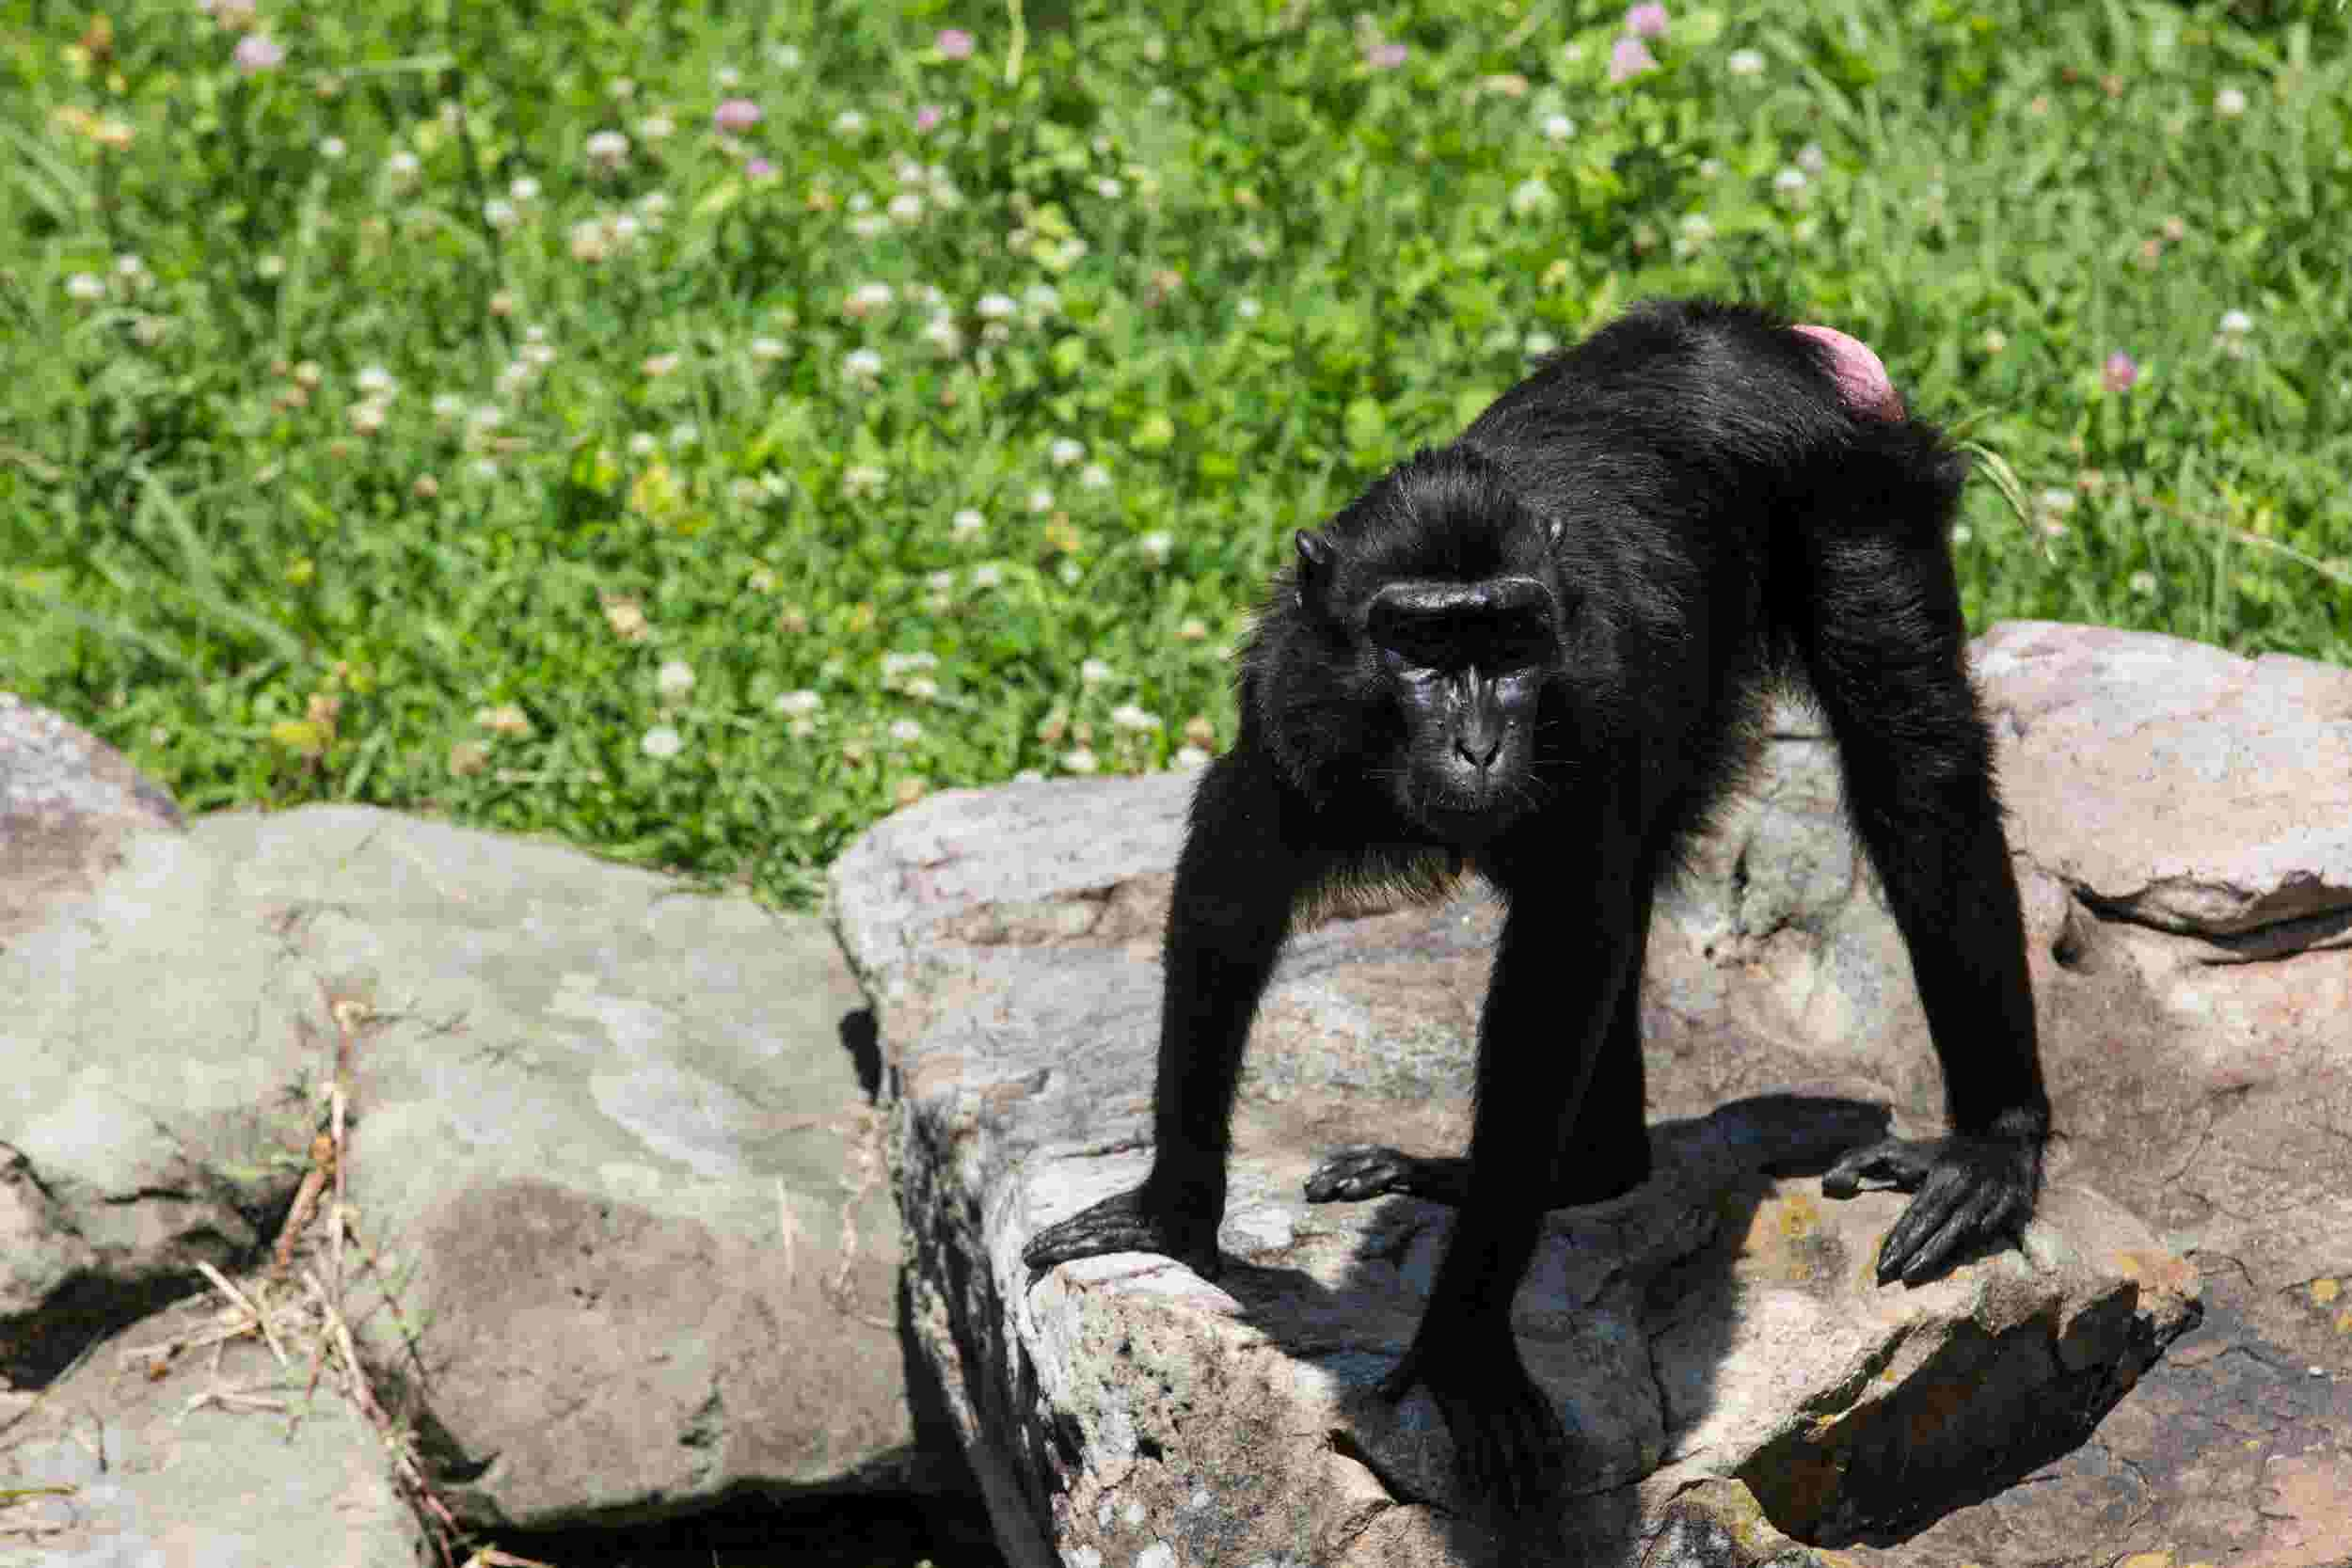 Never forget: Four years ago today, a lost monkey named Zimm was found again in Memphis